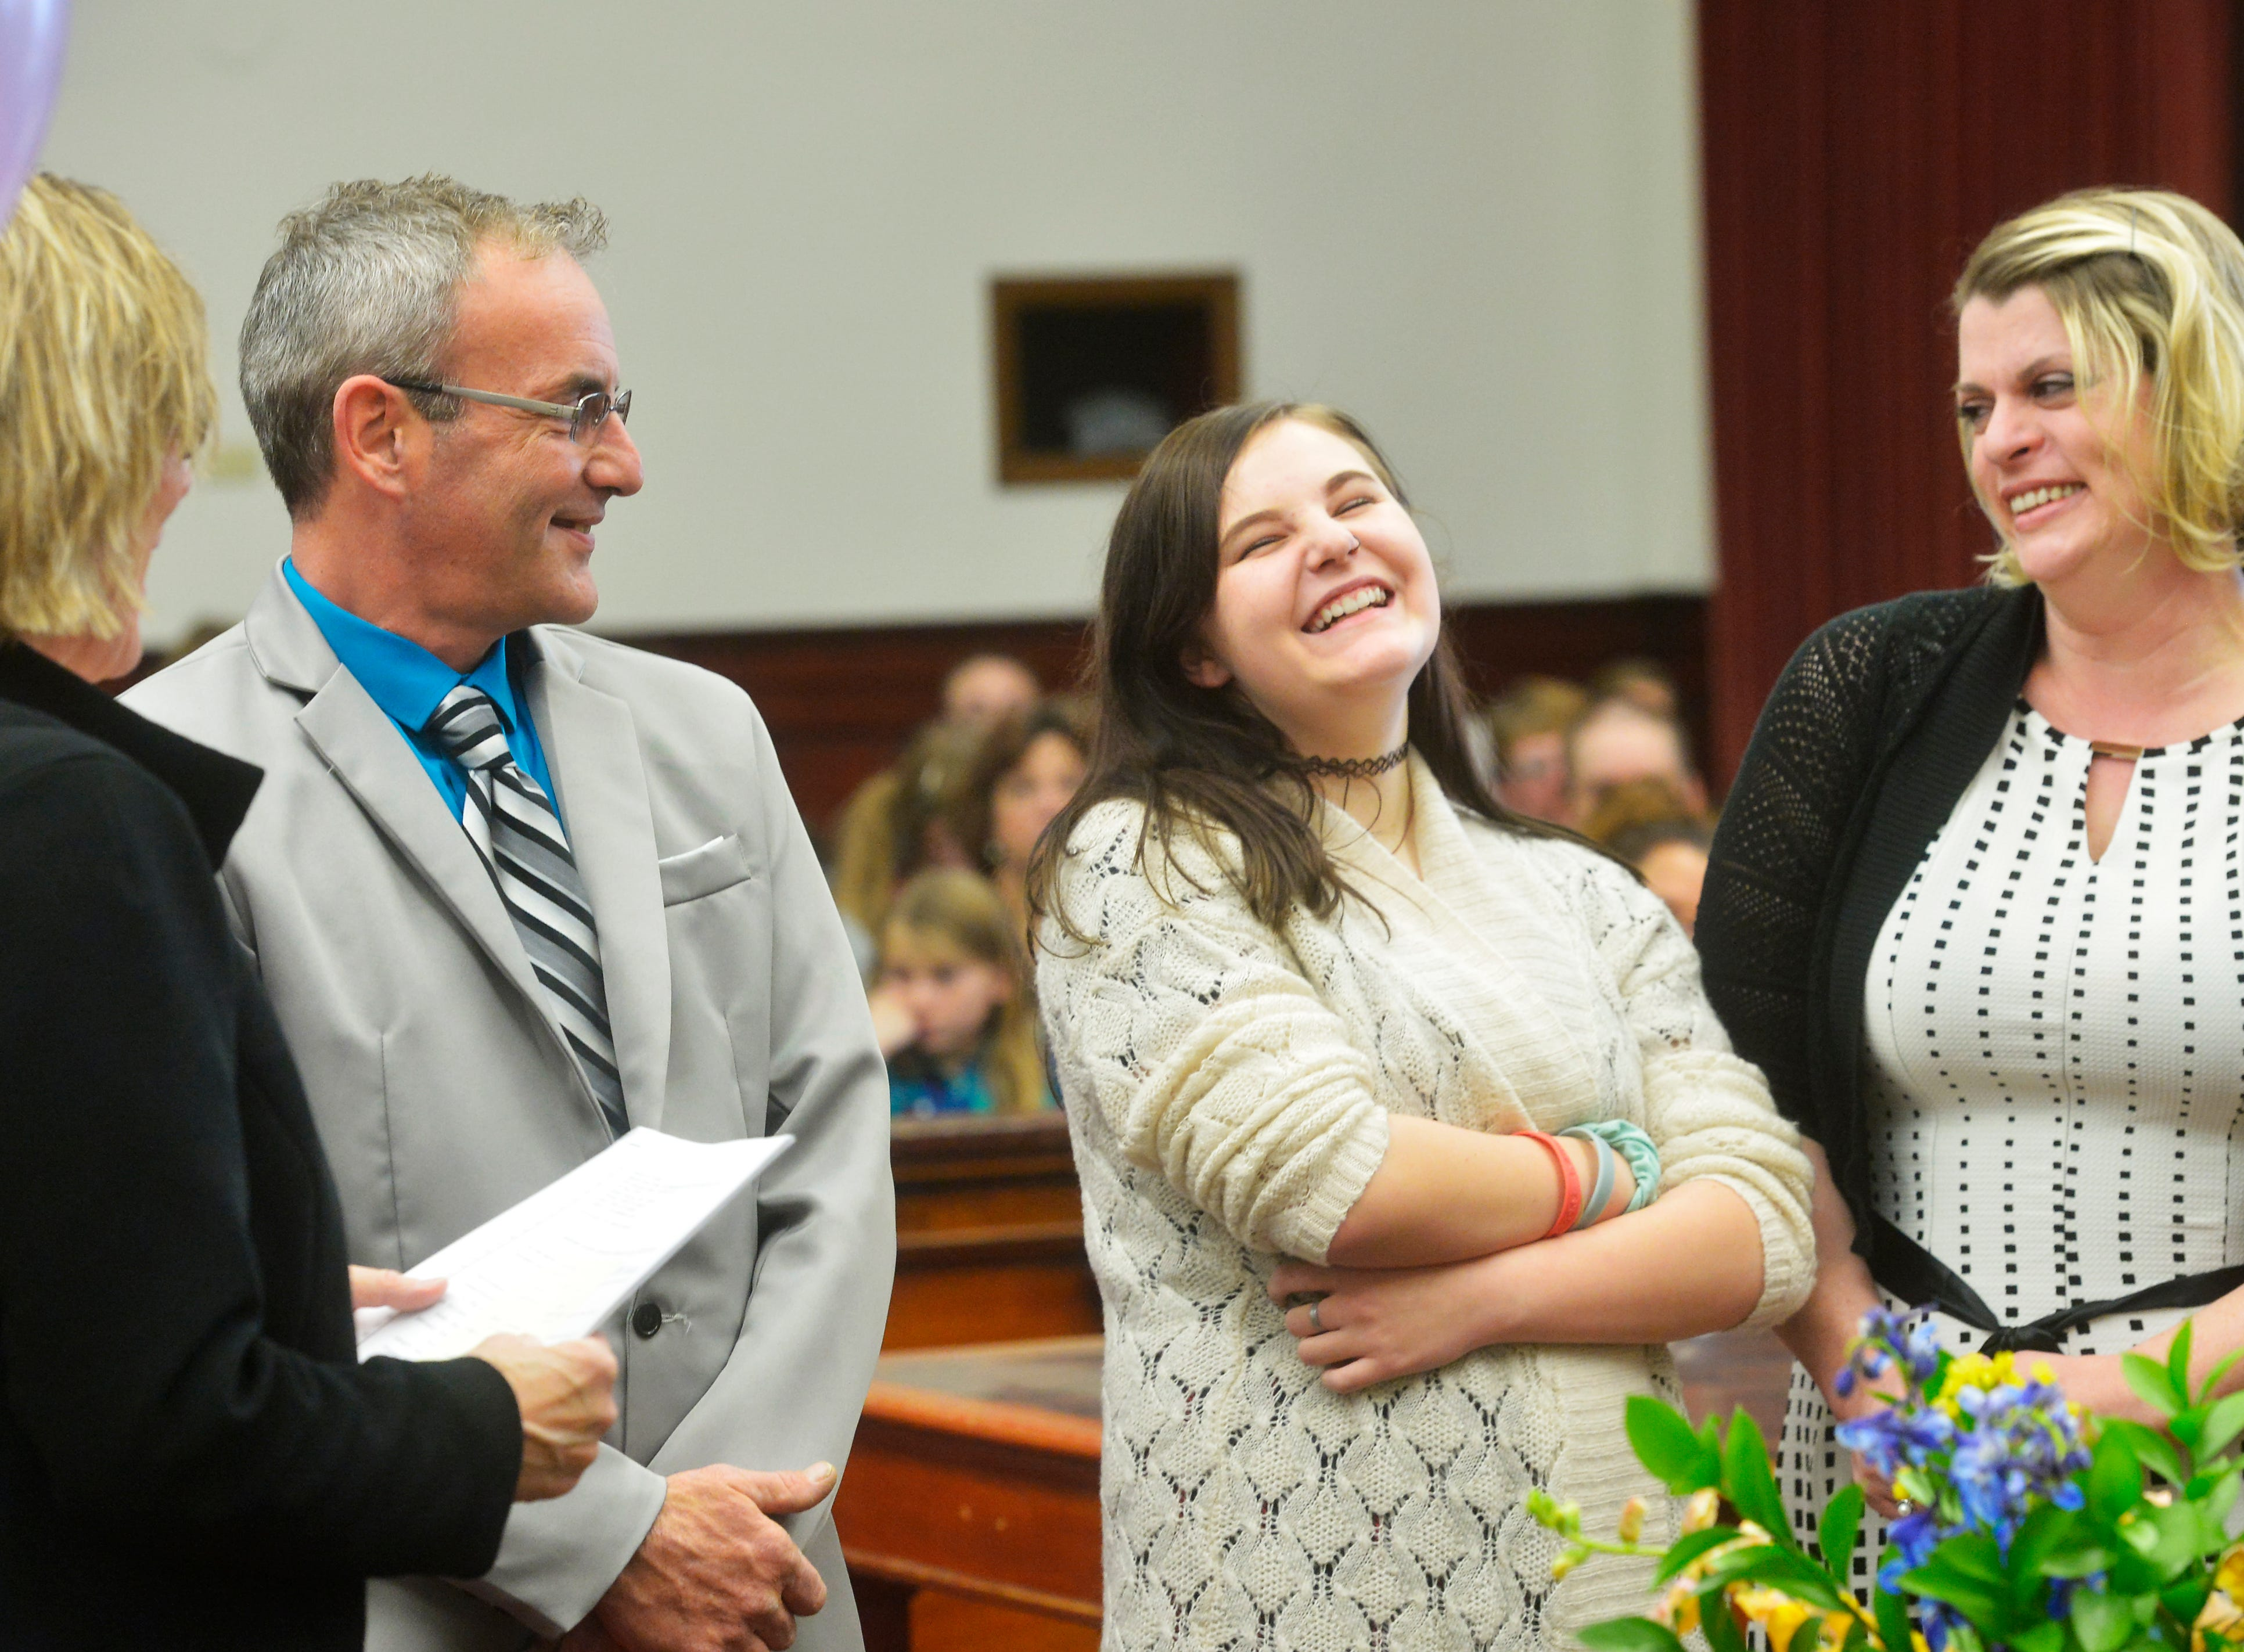 Patience DeRosa, age 13, laughs at a joke during her adoption ceremony as her adoptive parents, Jason and Hyasienth, look on in the Cascade County Courthouse on Friday.